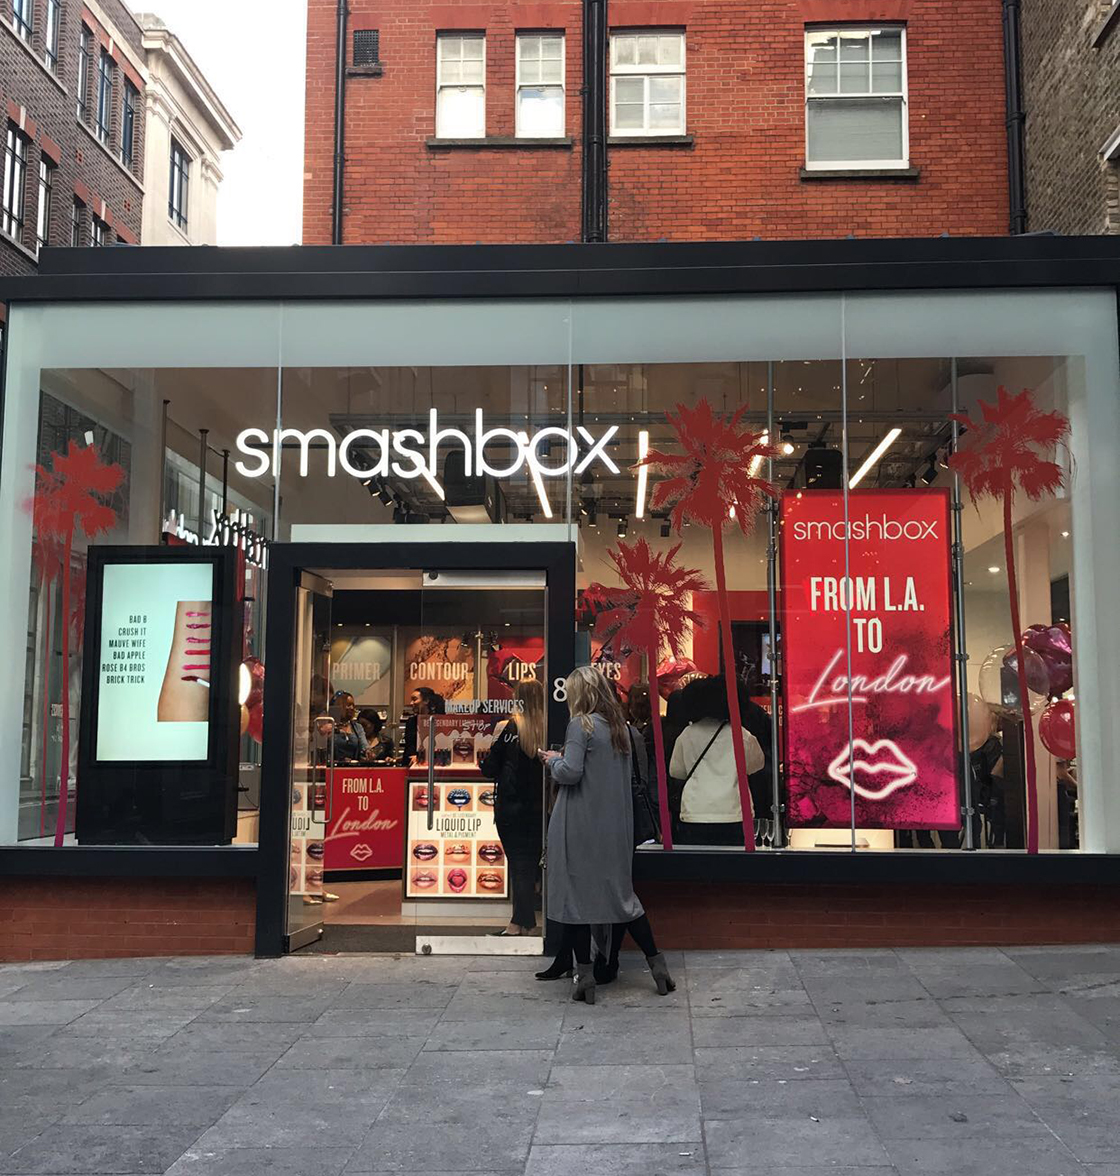 From LA to London: Smashbox opens new flagship store